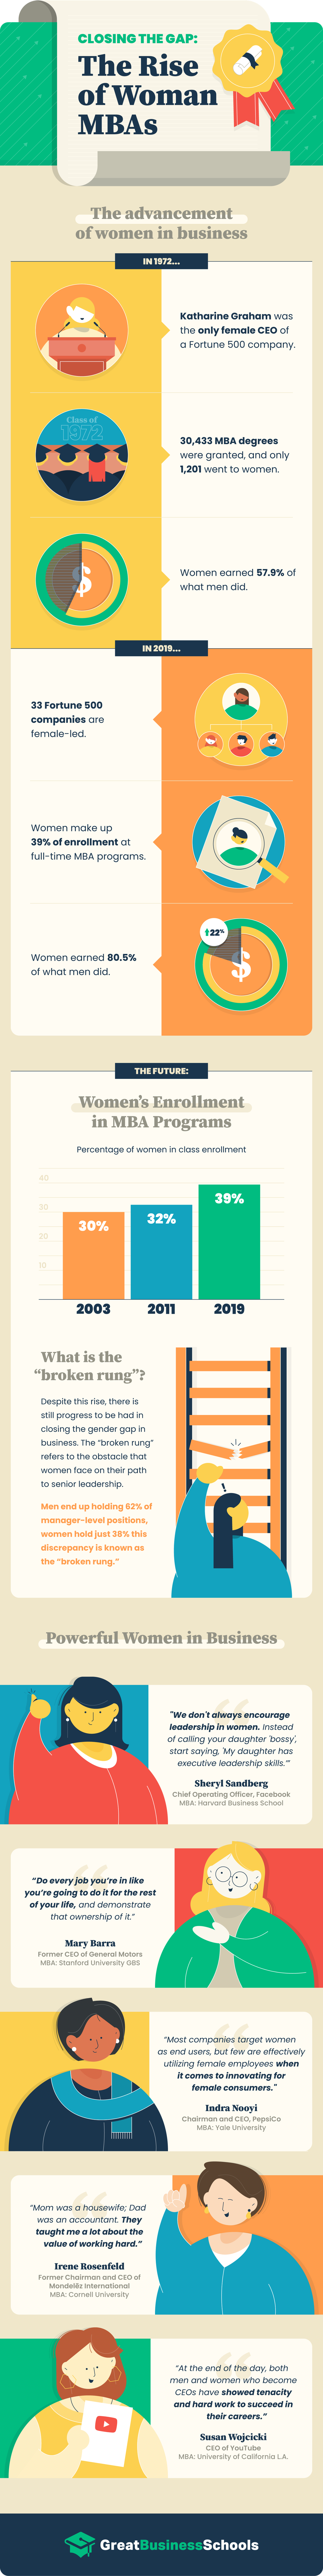 Rise of Women MBAs